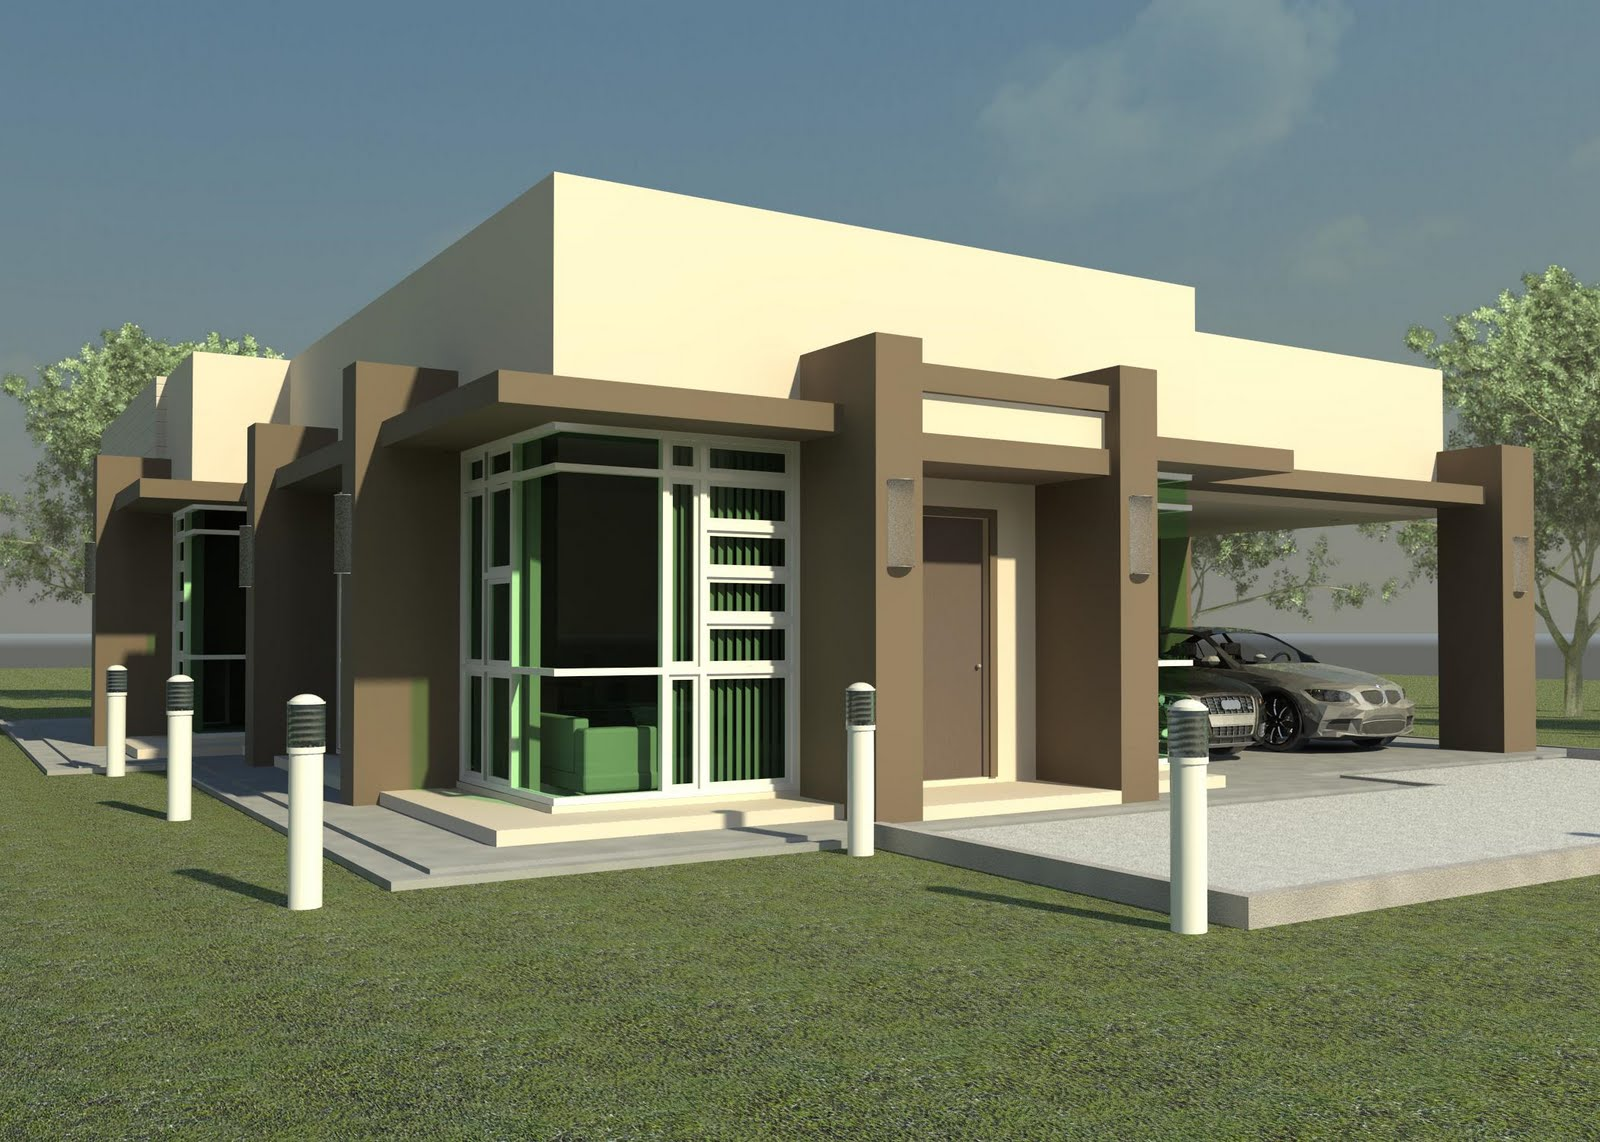 New home designs latest modern small homes designs exterior for Design exterior of home